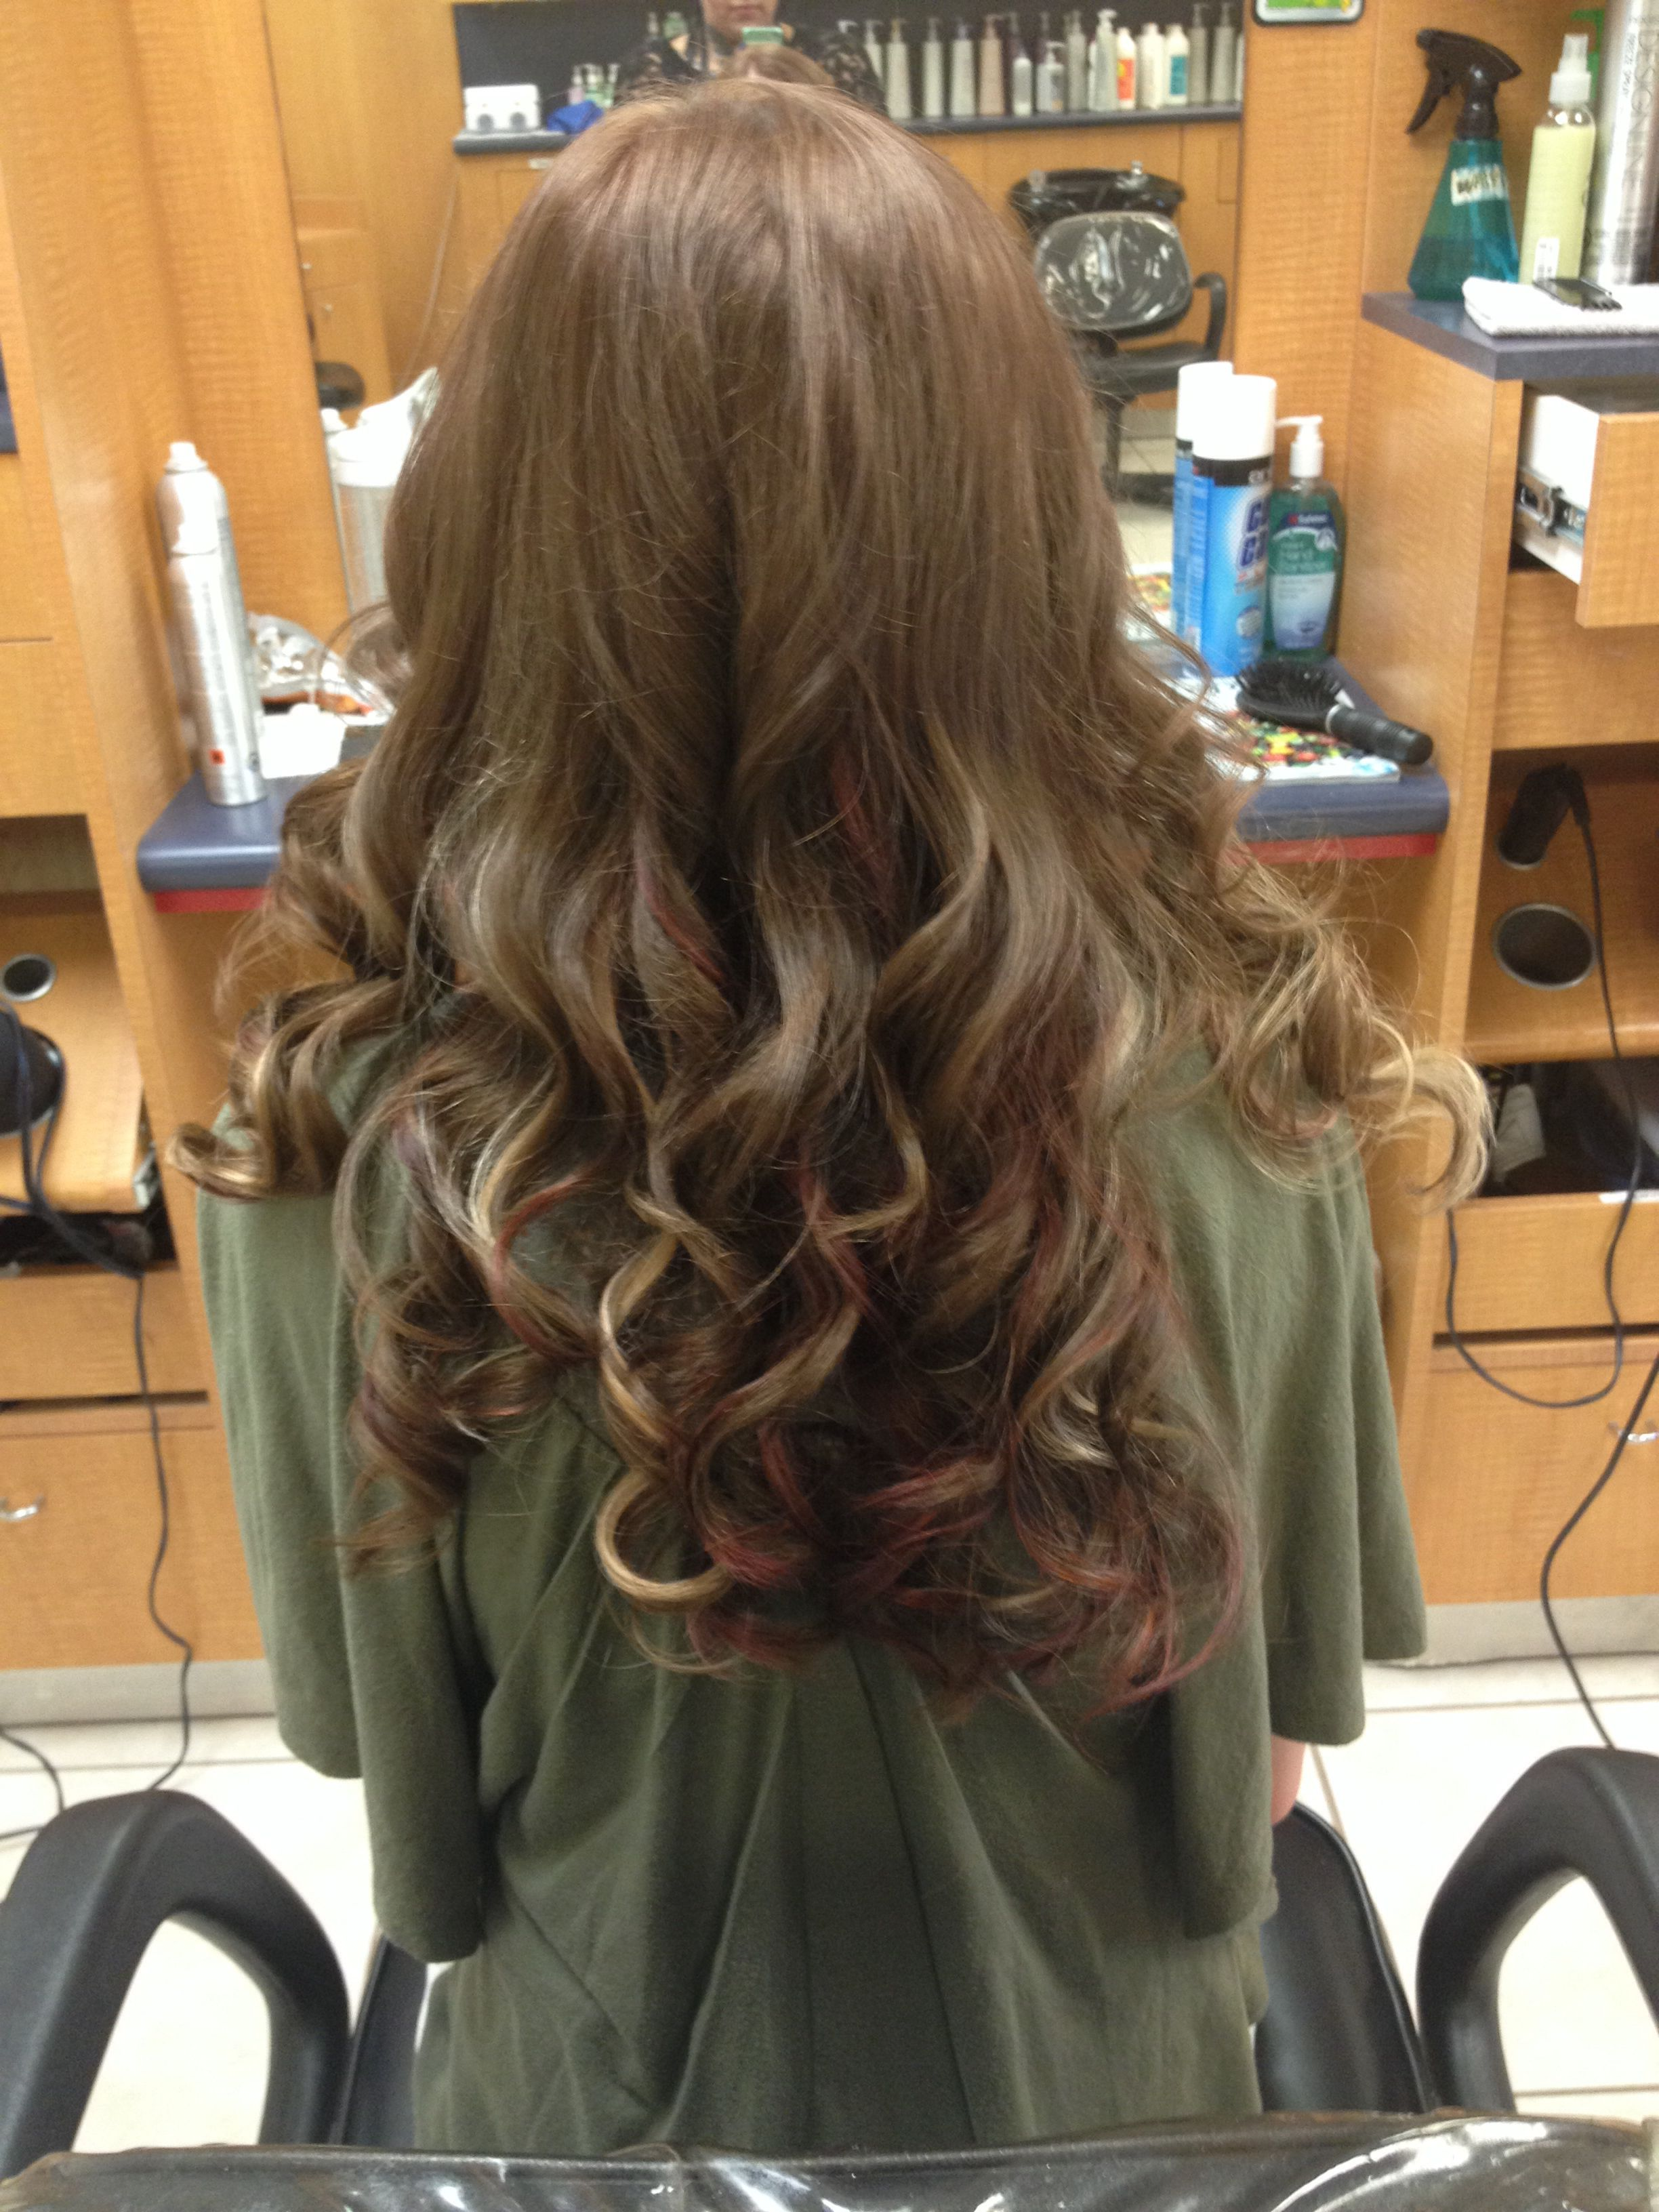 Brown Hair With Blonde And Red Peekaboo Highlights Hair Makeup